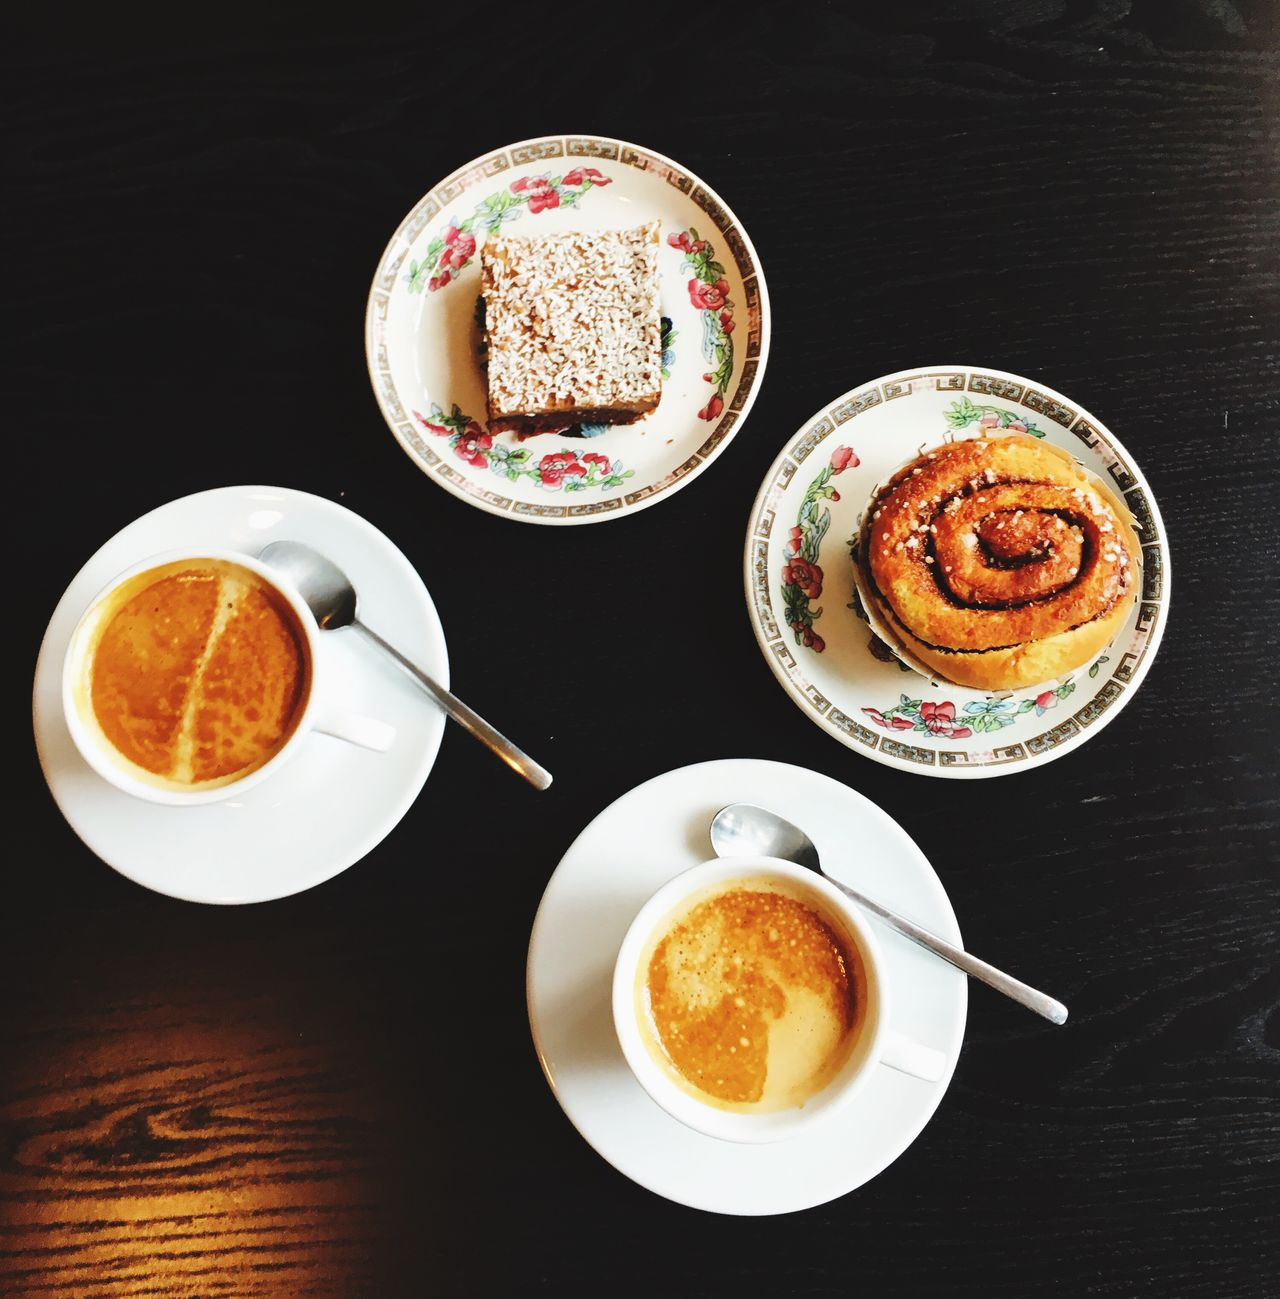 Fika Cappuccino Coffee Sweet Food Bun Cinnamonrolls Cinnamon Roll  Cinnamon Buns Chocolatecake Break Coffee Break Coffee And Sweets Coffee Cup Espresso Cappuccino Break Coffee Time Coffee Shop Coffee At Home